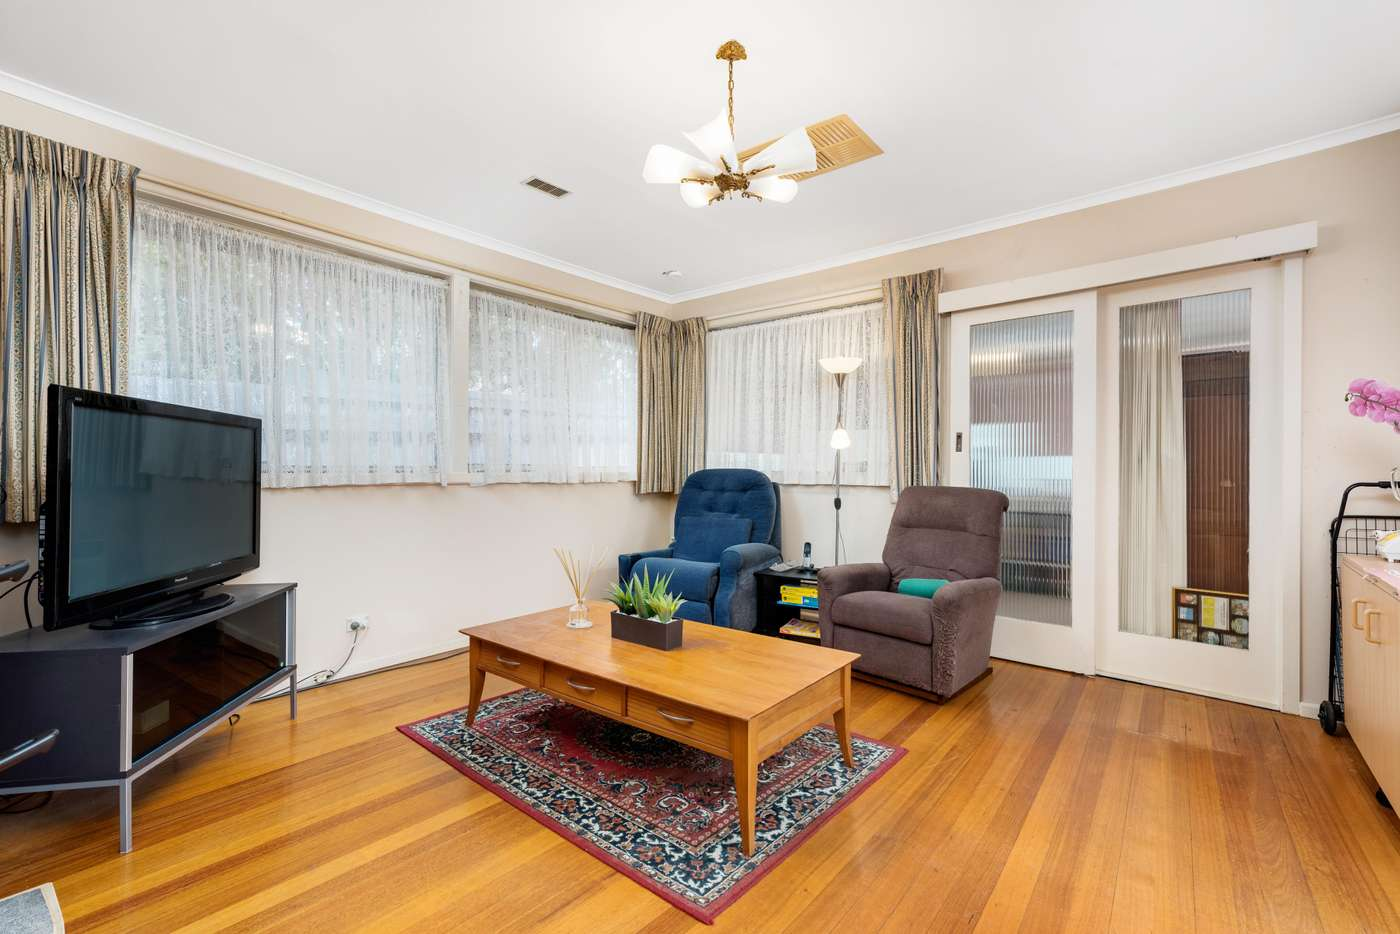 Fifth view of Homely house listing, 5 Flag Street, Kingsbury VIC 3083